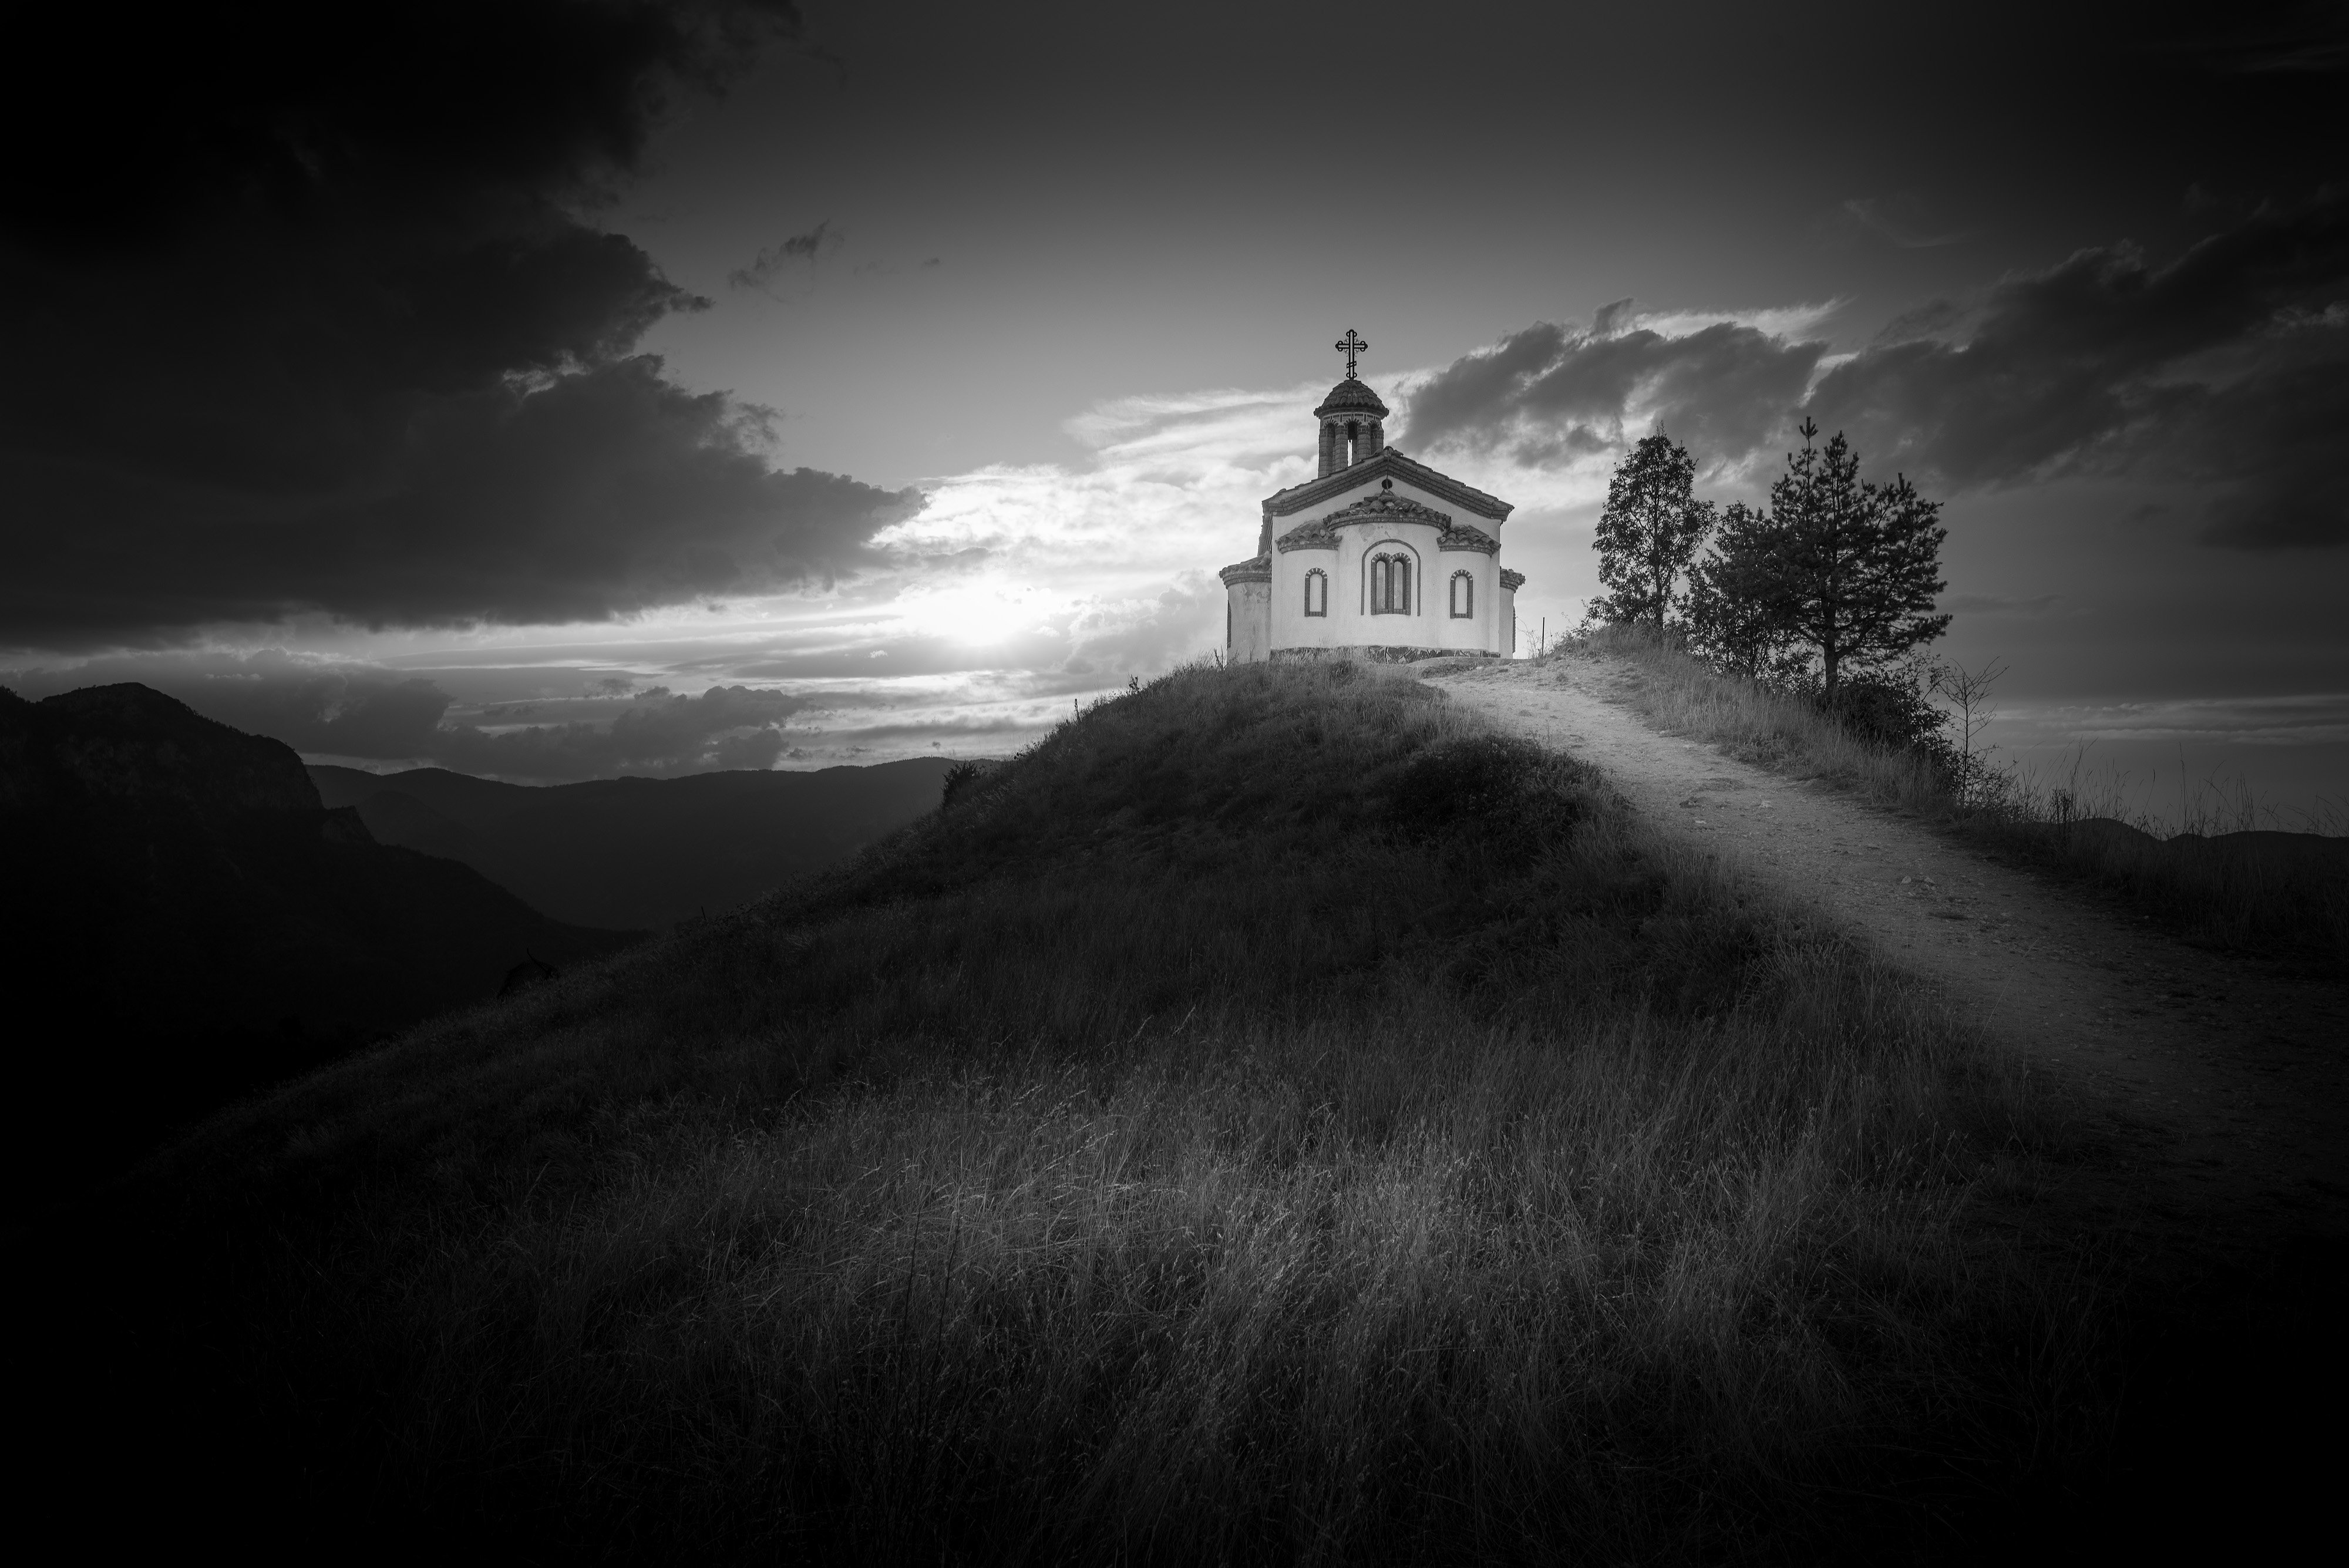 chapel, sunset, black and white, clouds, dramatic, Иво Кузов